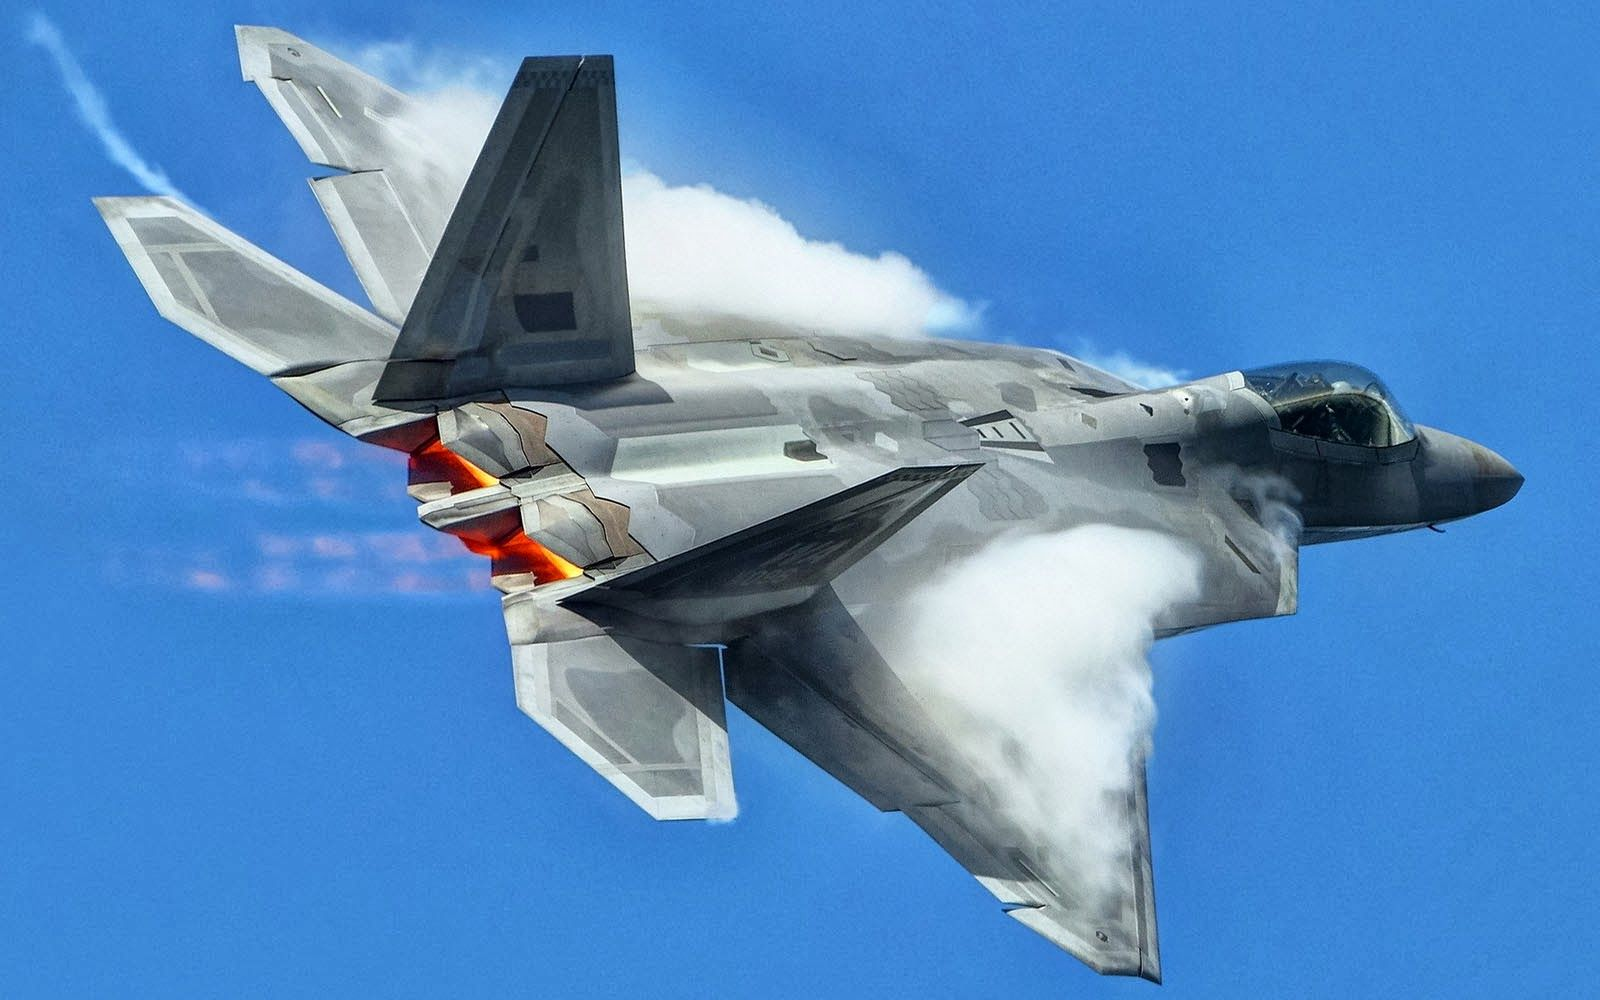 Lockheed Martin F 22 Raptor Wallpapers 6 Fighter Jets Aircraft Fighter Planes